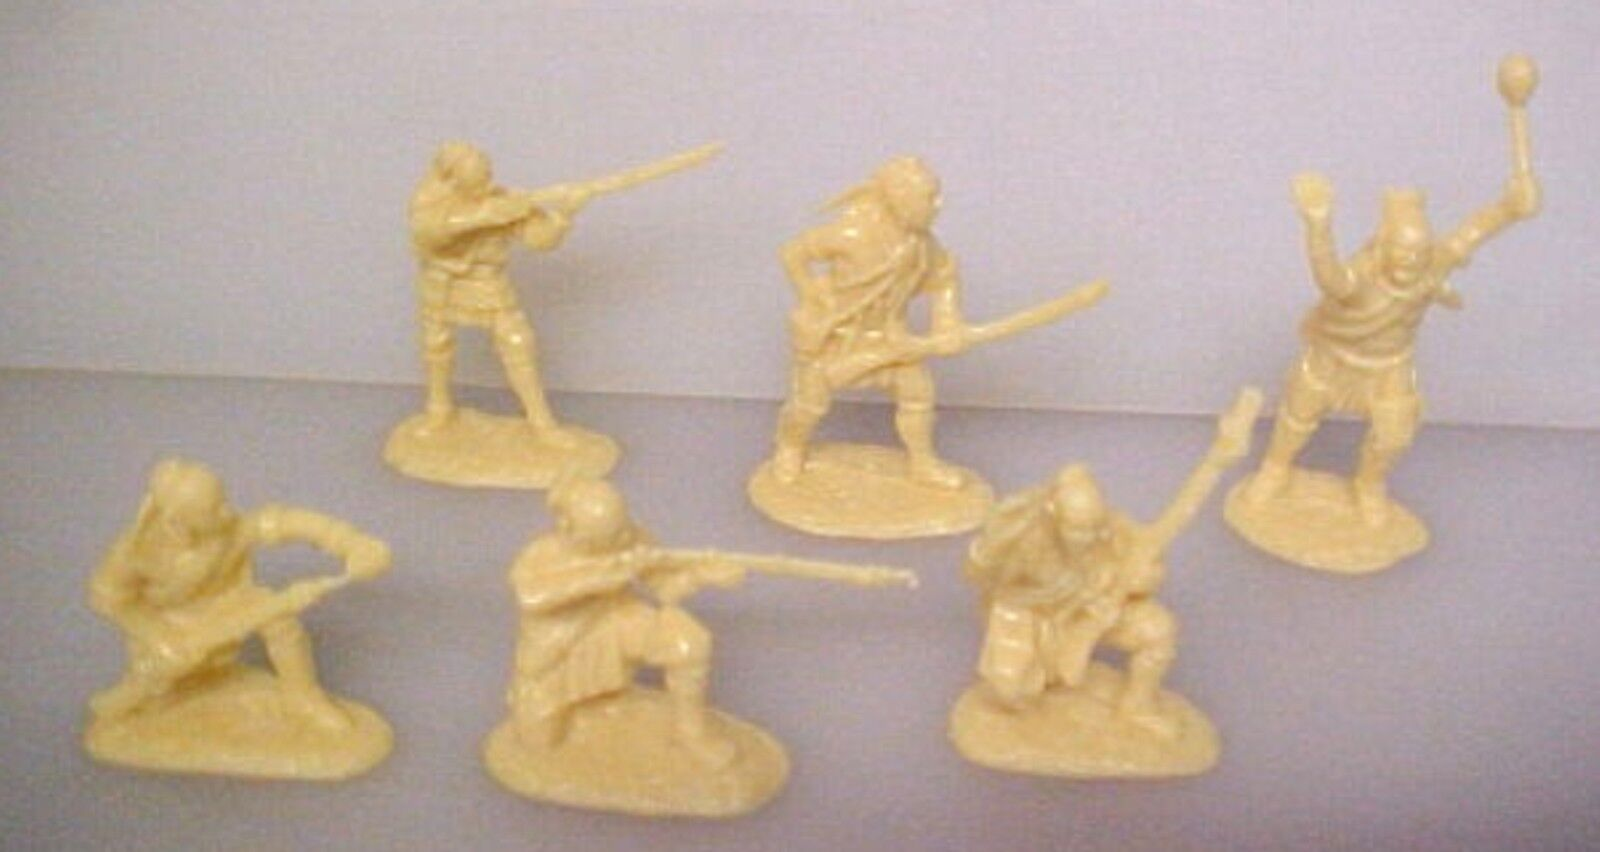 18 American Indians Set 1 Aip Plastic Soldiers Army Men 5547